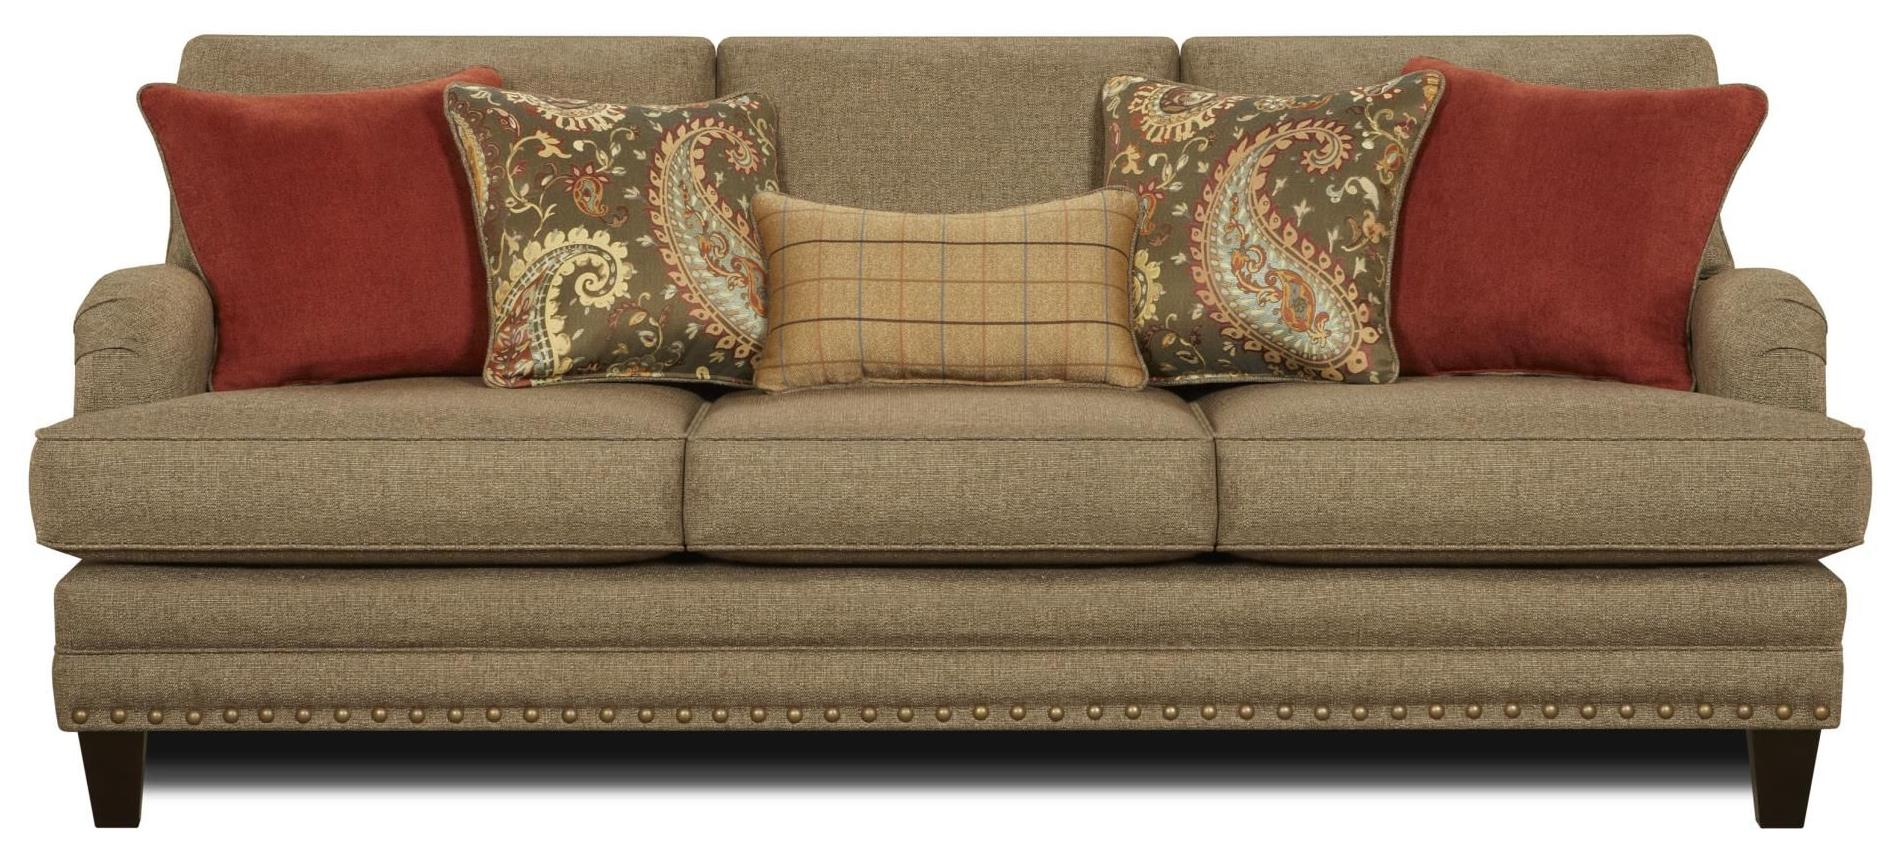 Fusion Furniture 5960 Sofa - Item Number: 5960-KPHanson Cypress